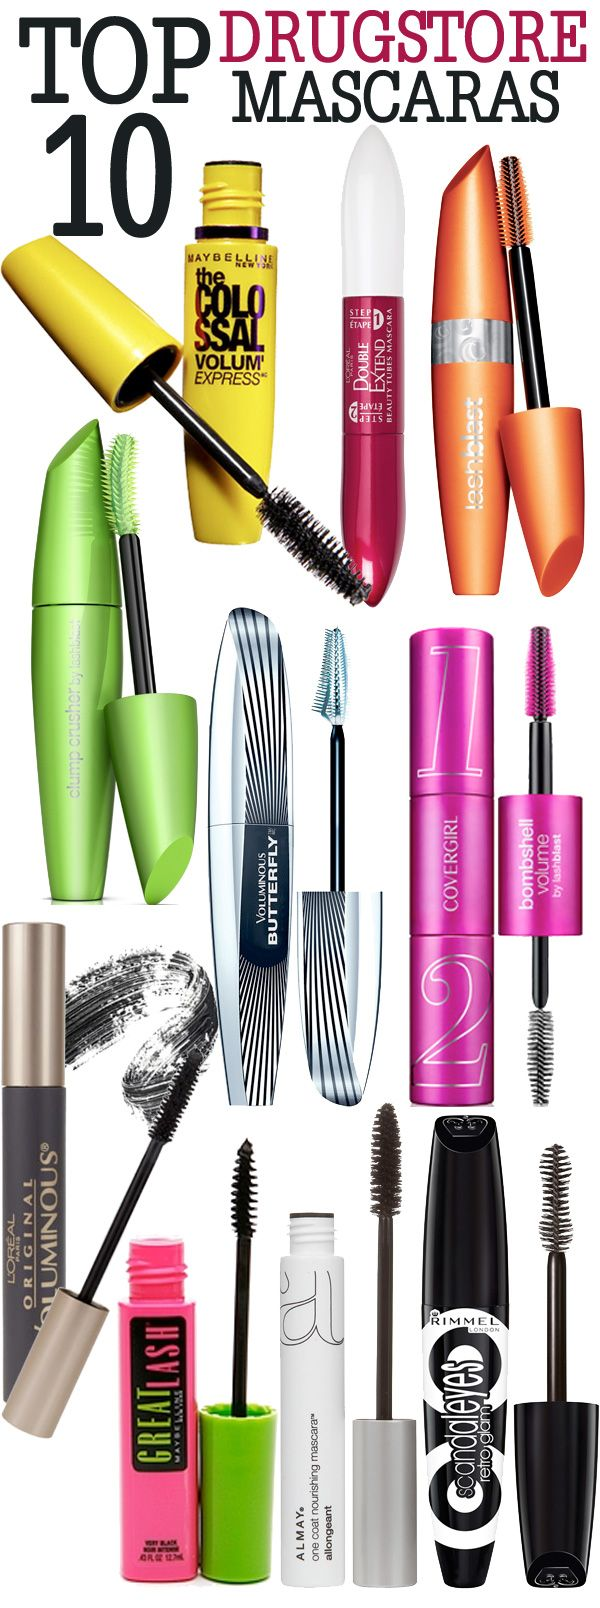 Top 10 Drugstore Mascaras